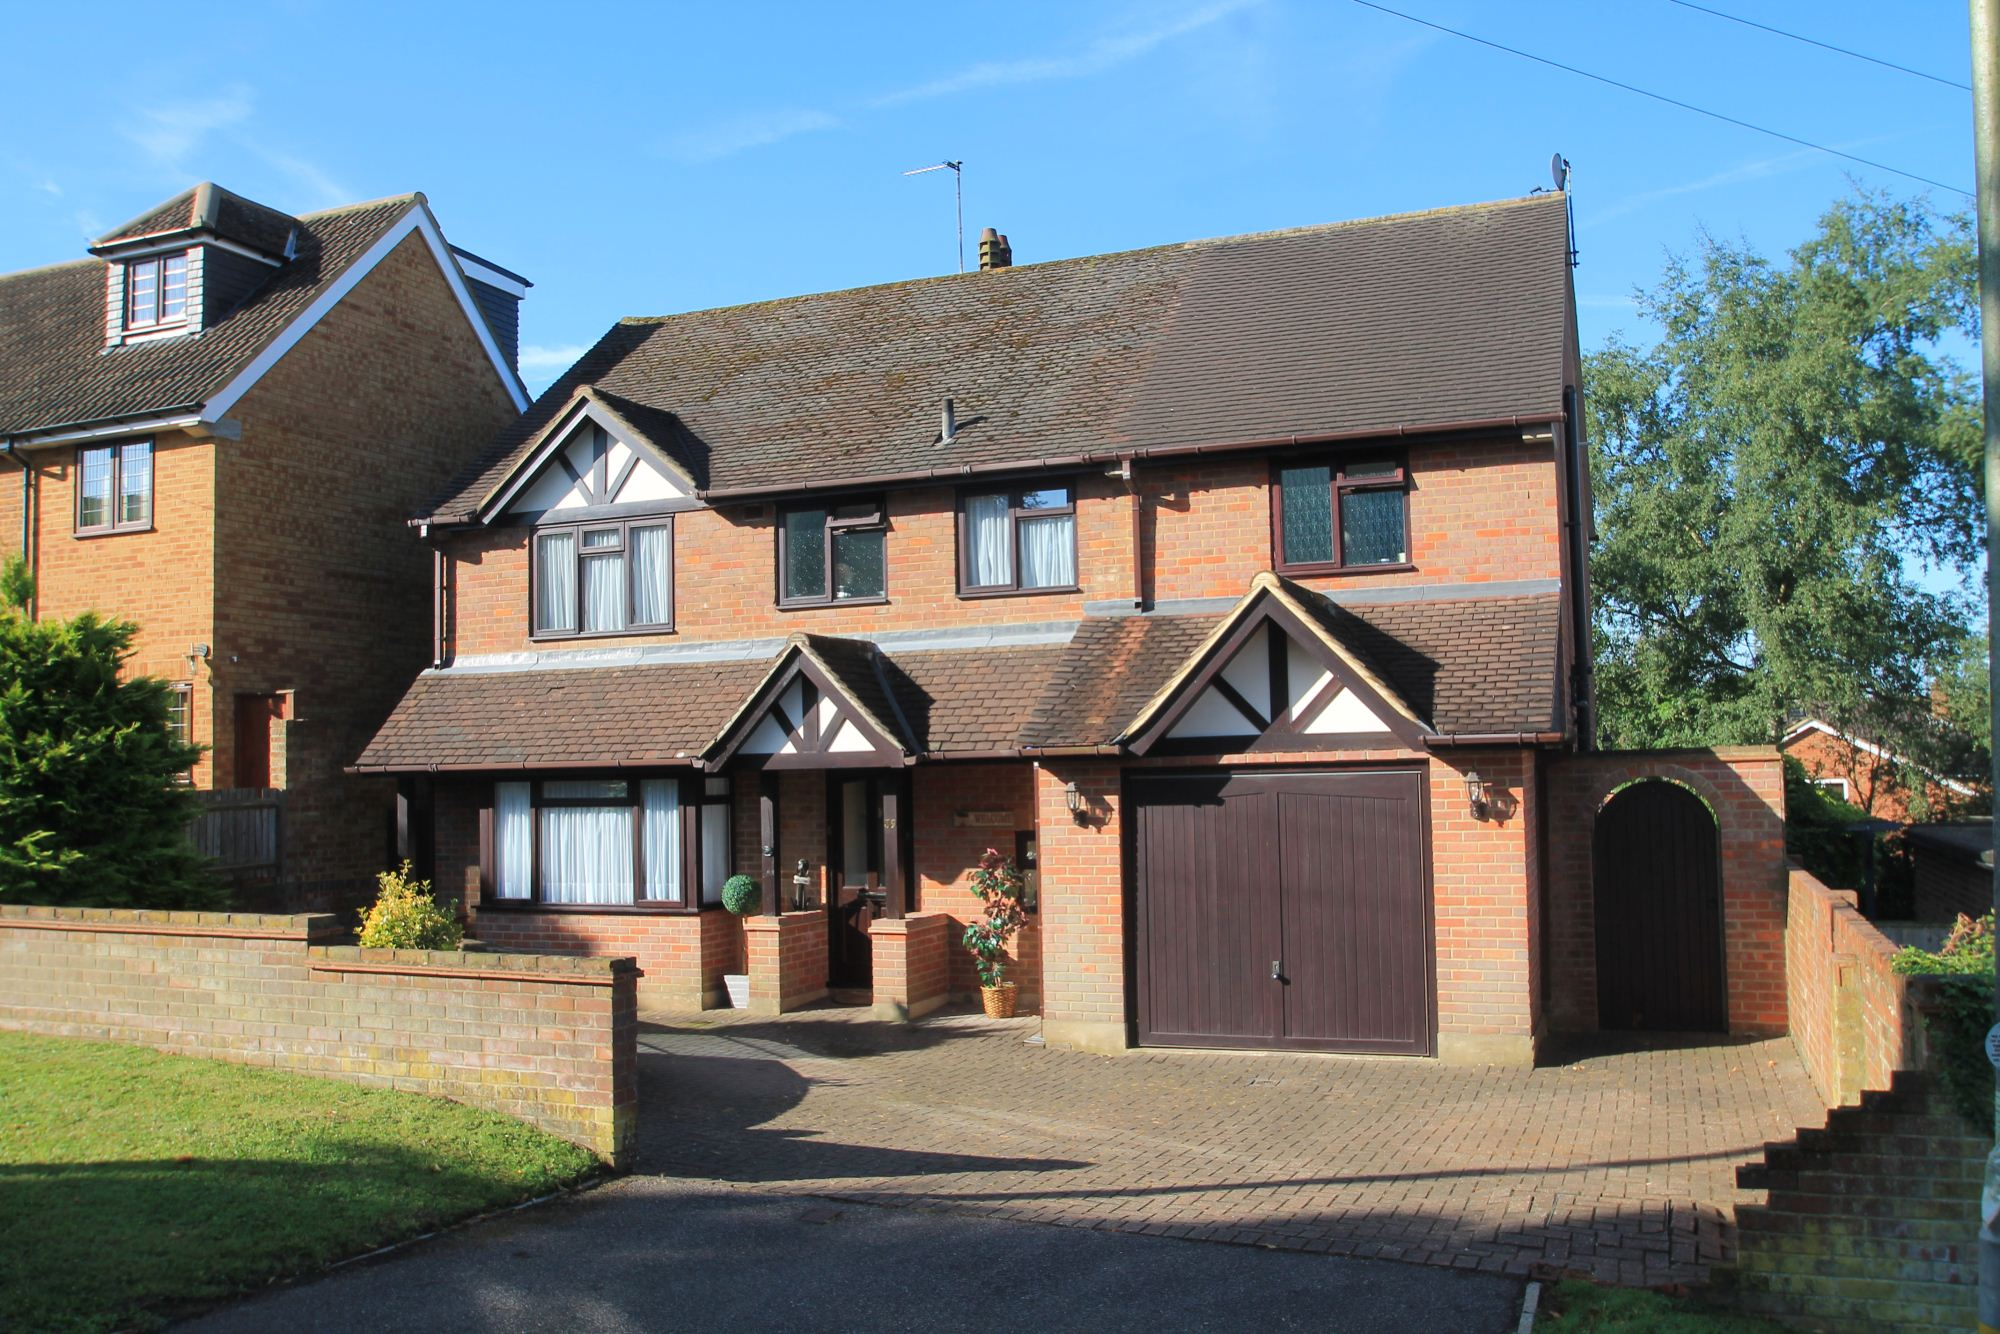 4 bedroom detached house for sale in abbots road abbots